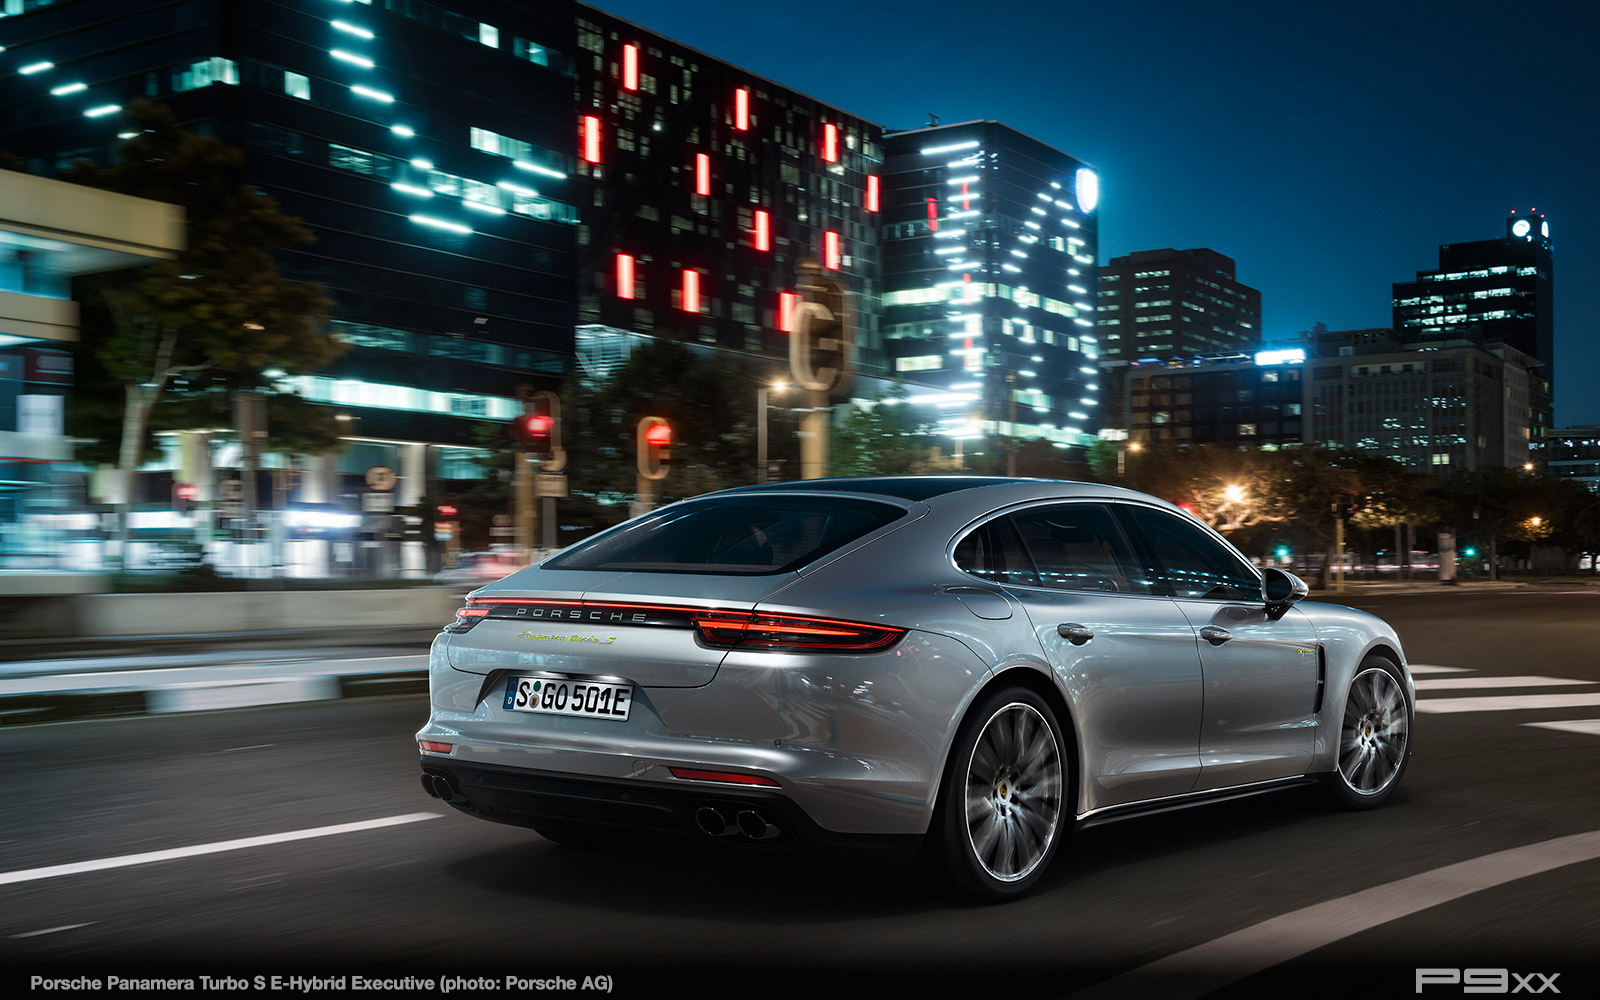 Panamera Turbo S E-Hybrid Executive (EU, 971)